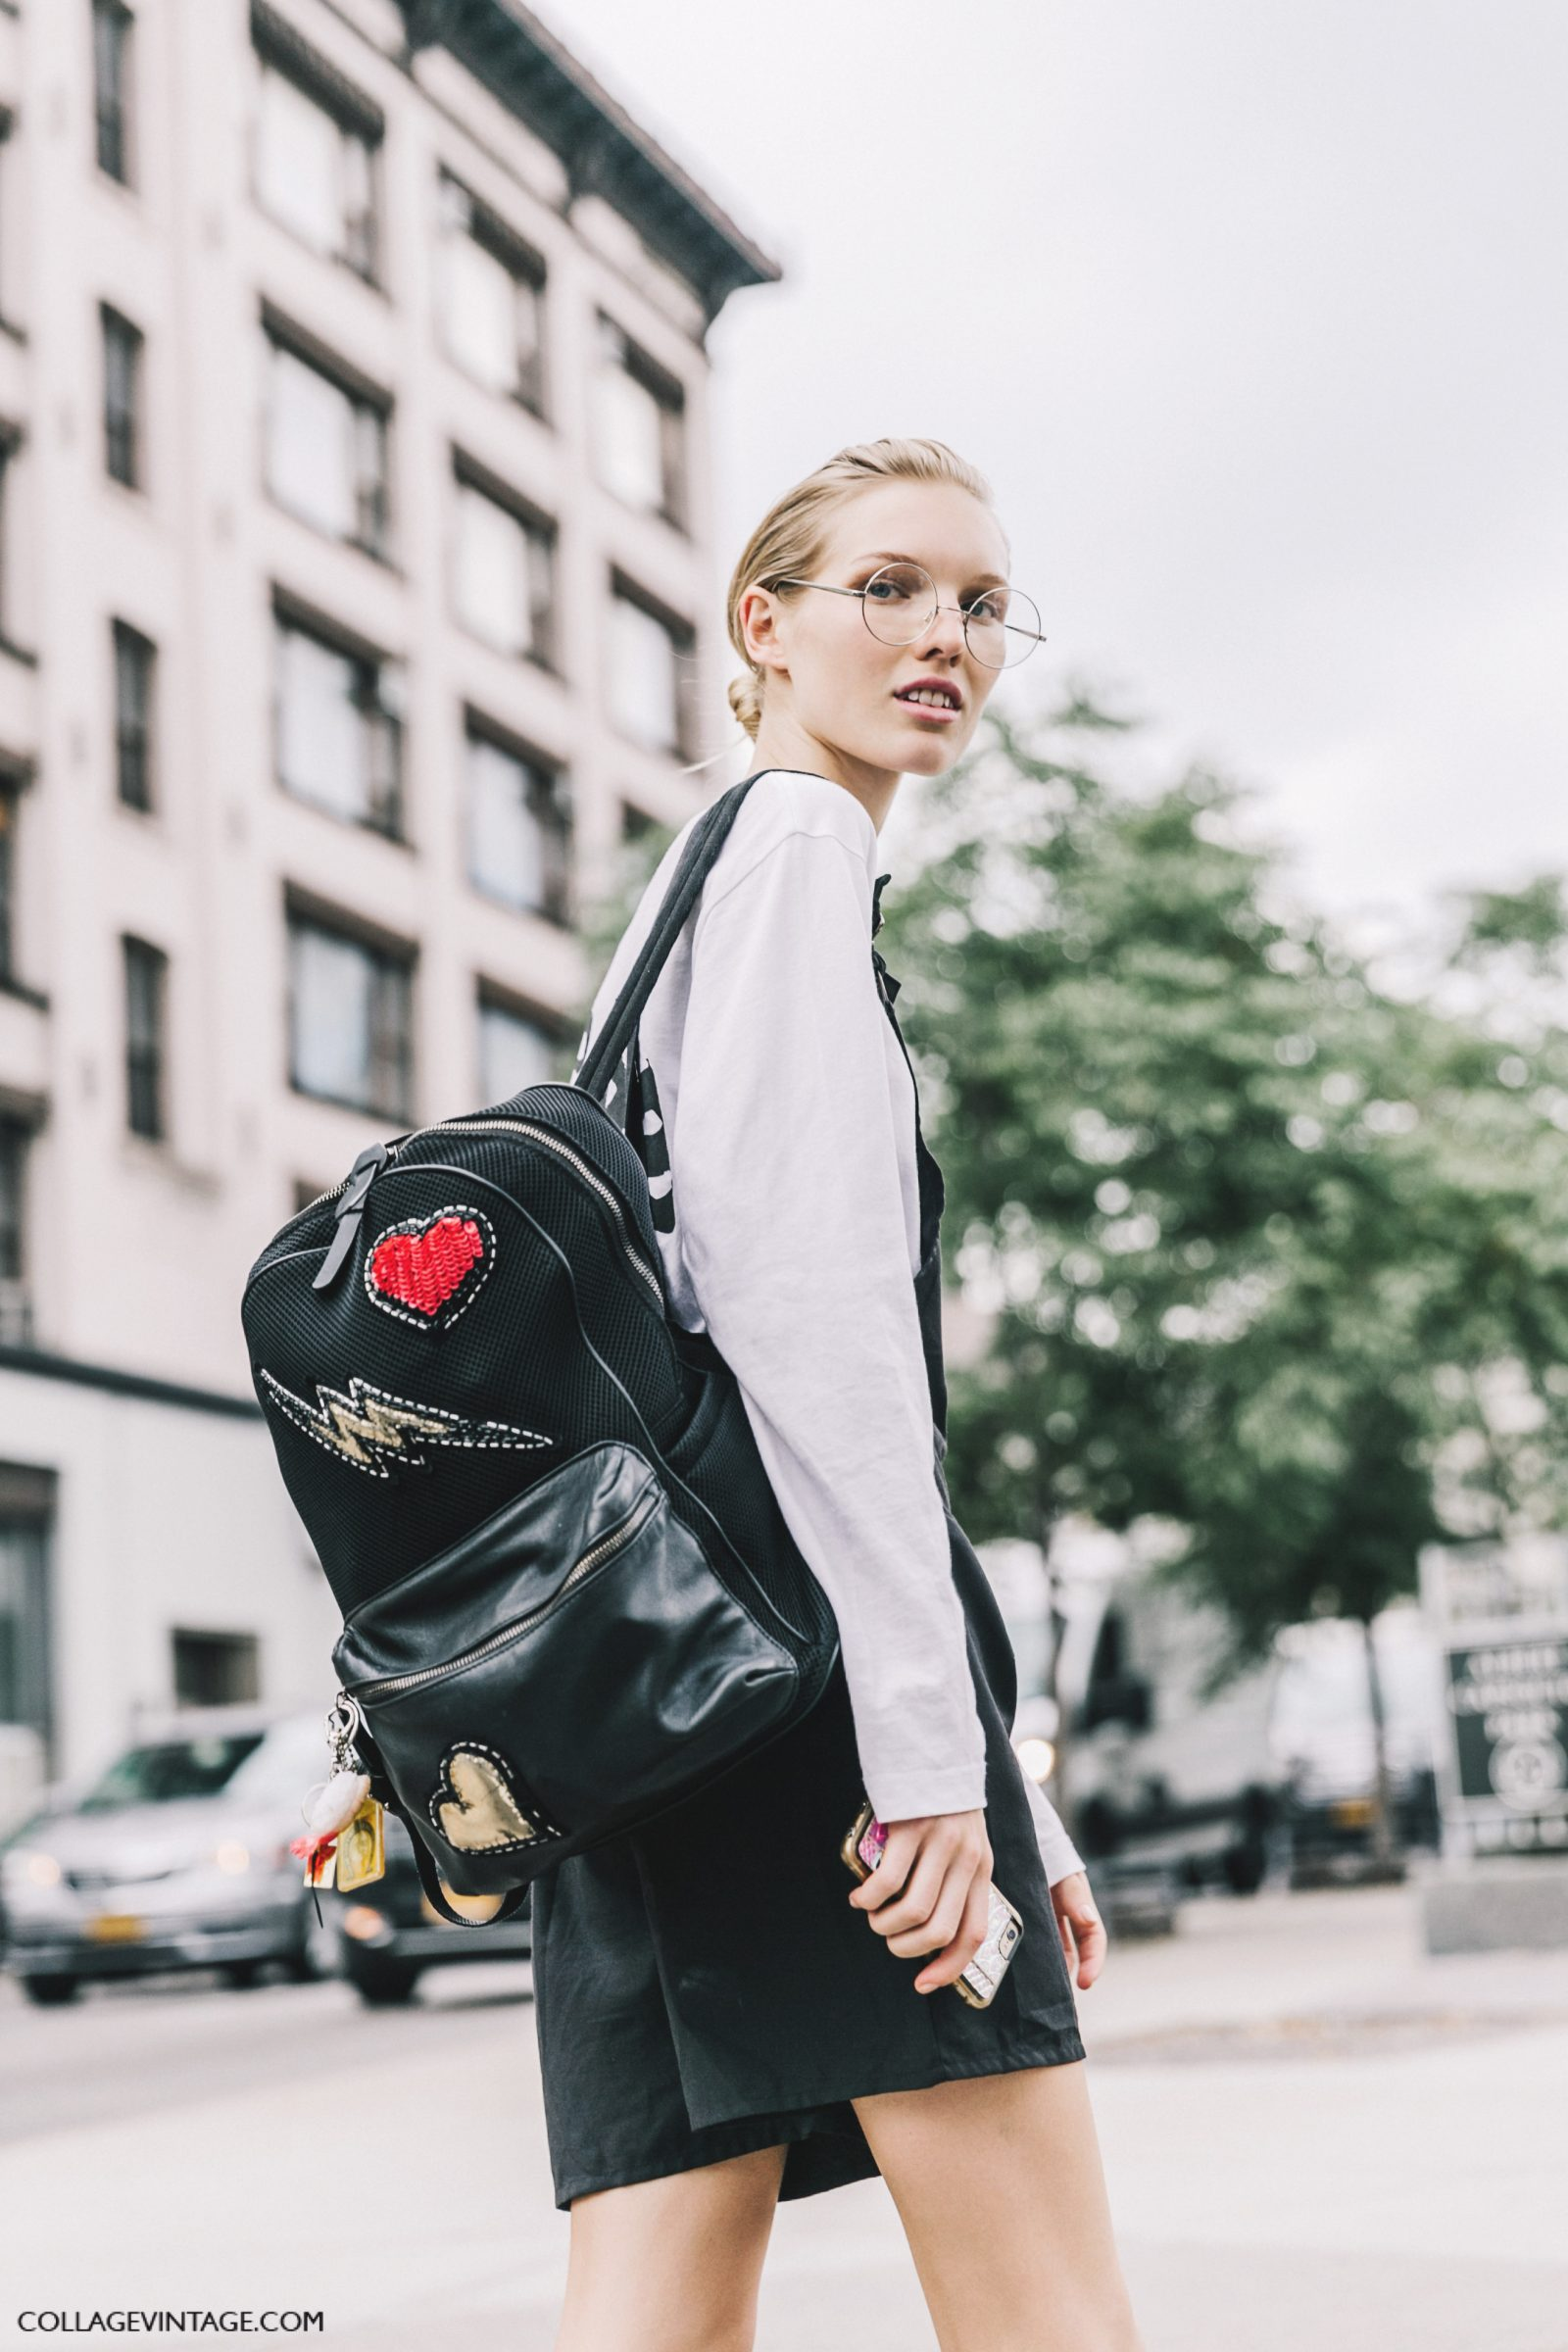 nyfw-new_york_fashion_week_ss17-street_style-outfits-collage_vintage-backpack-rouded_glosses-2